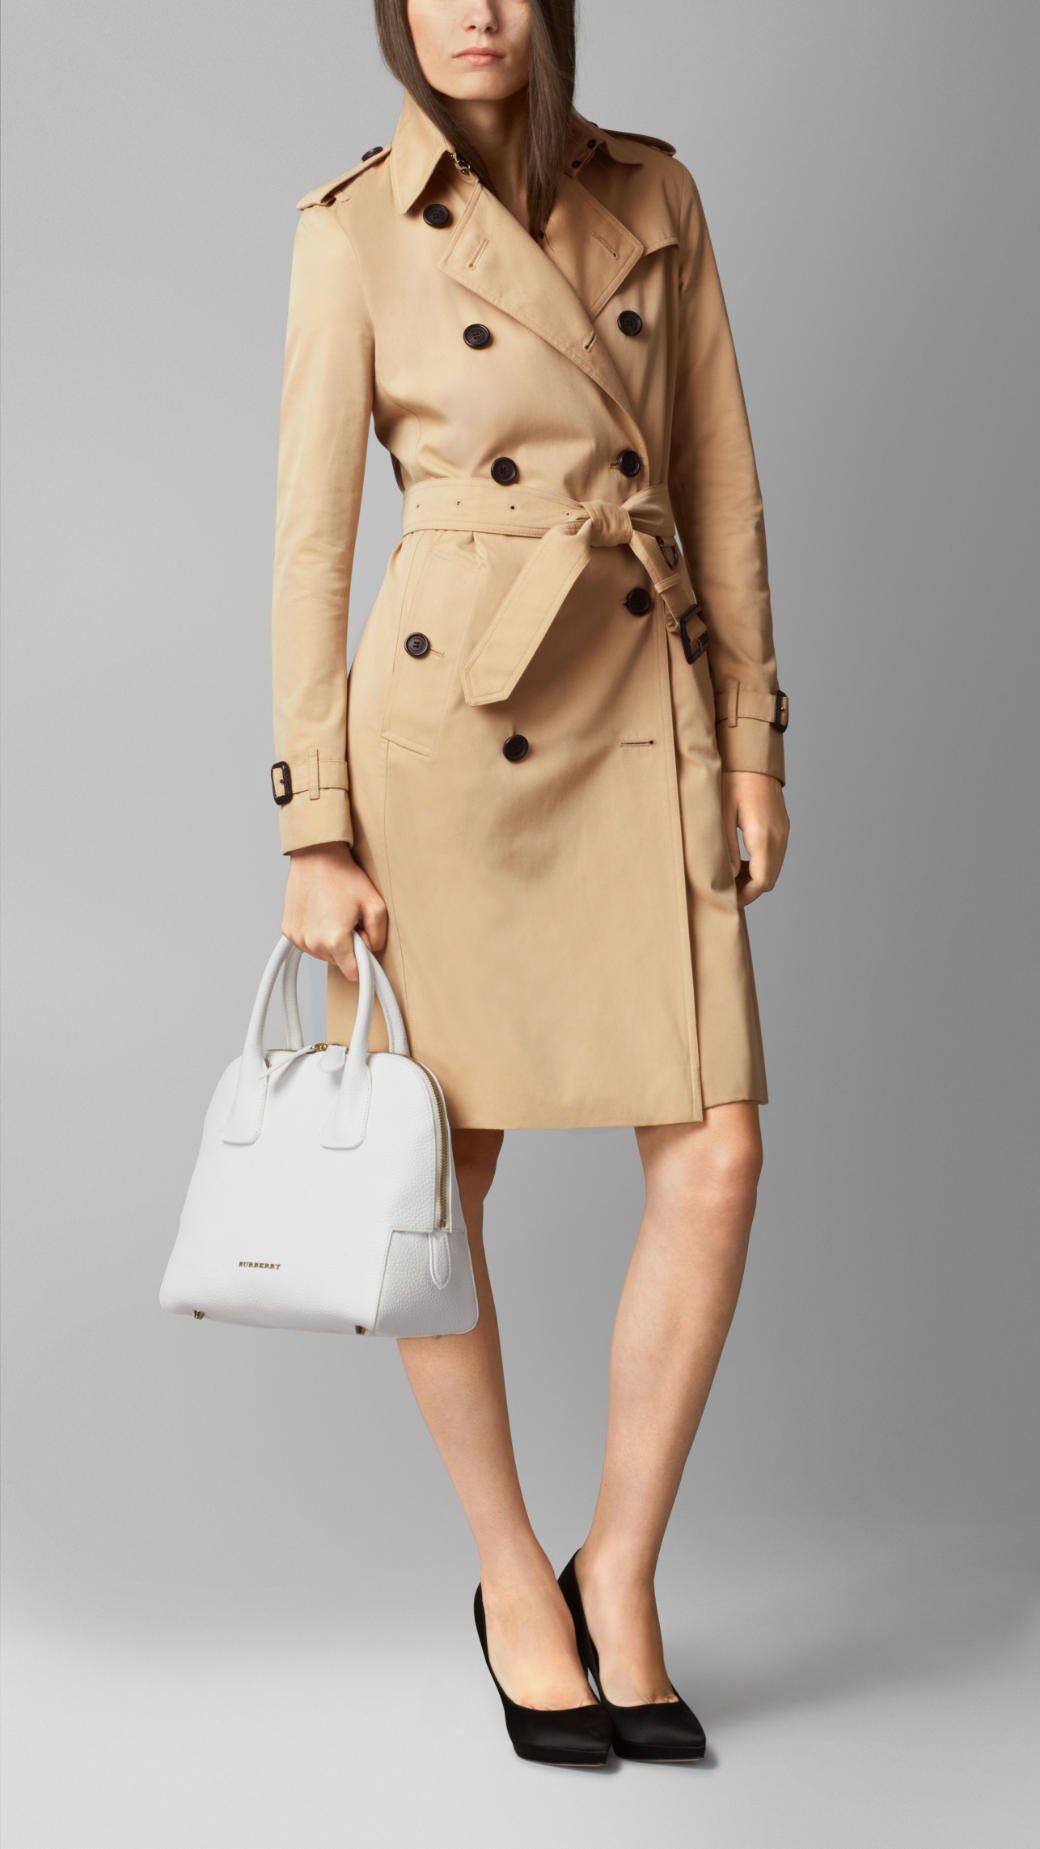 ce41a6b4ba09 Lyst - Burberry Small Grainy Leather Bowling Bag in White